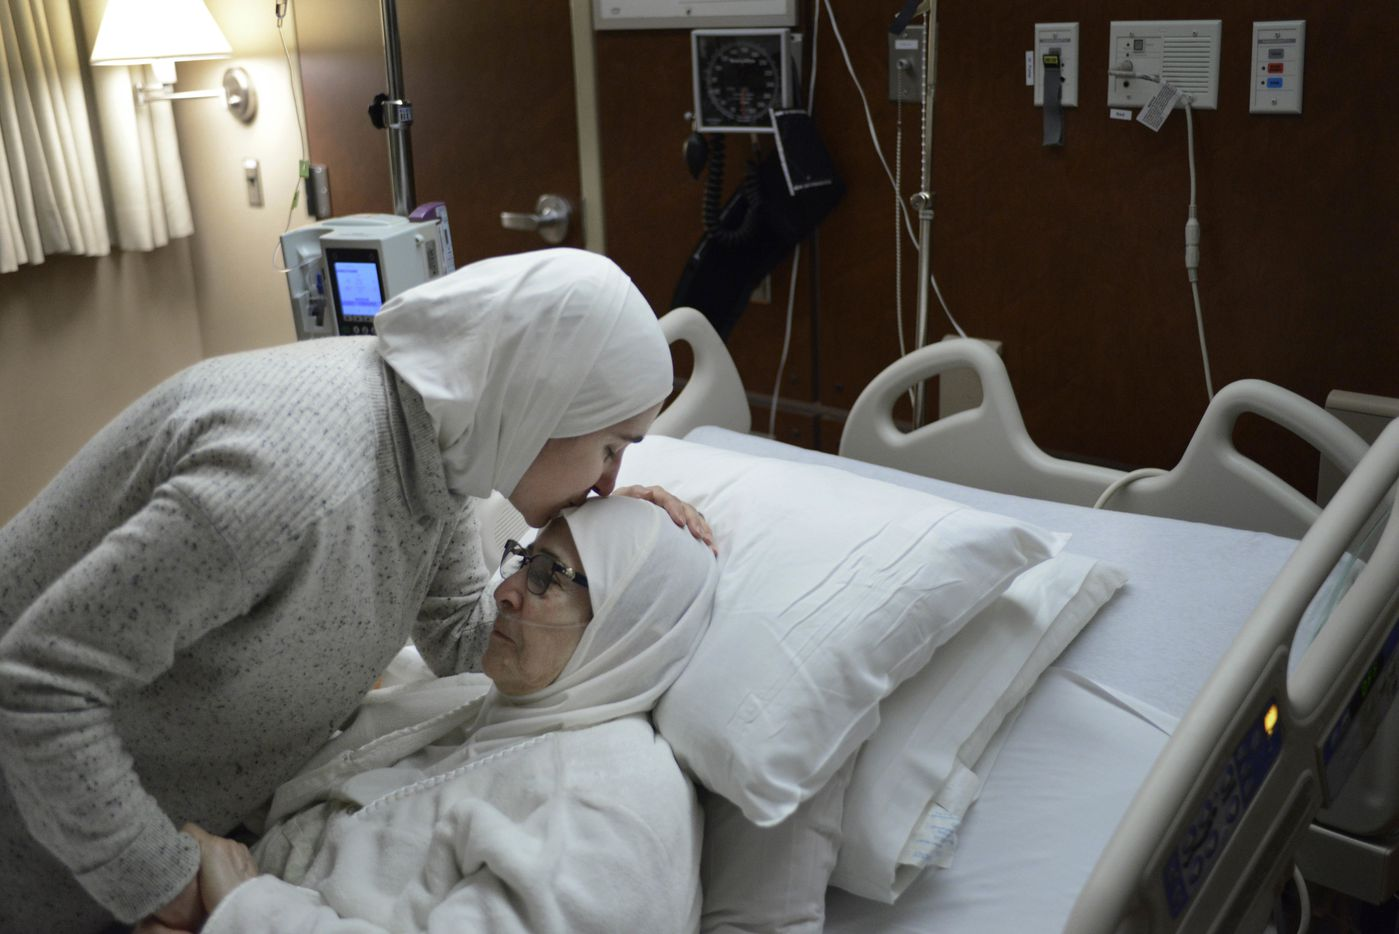 Nour Ulayyet left, comforts her mother Isaaf Jamal Eddin at Munster Community Hospital Saturday, Jan. 28, 2017, in Munster, Ind. Ulayyet of Valparaiso, Ind., said her sister, a Syrian living in Saudi Arabia who had a valid visa, was sent back after arriving from Riyadh at Chicago's O'Hare International Airport on Saturday and told she couldn't enter the U.S. to help care for their sick mother.